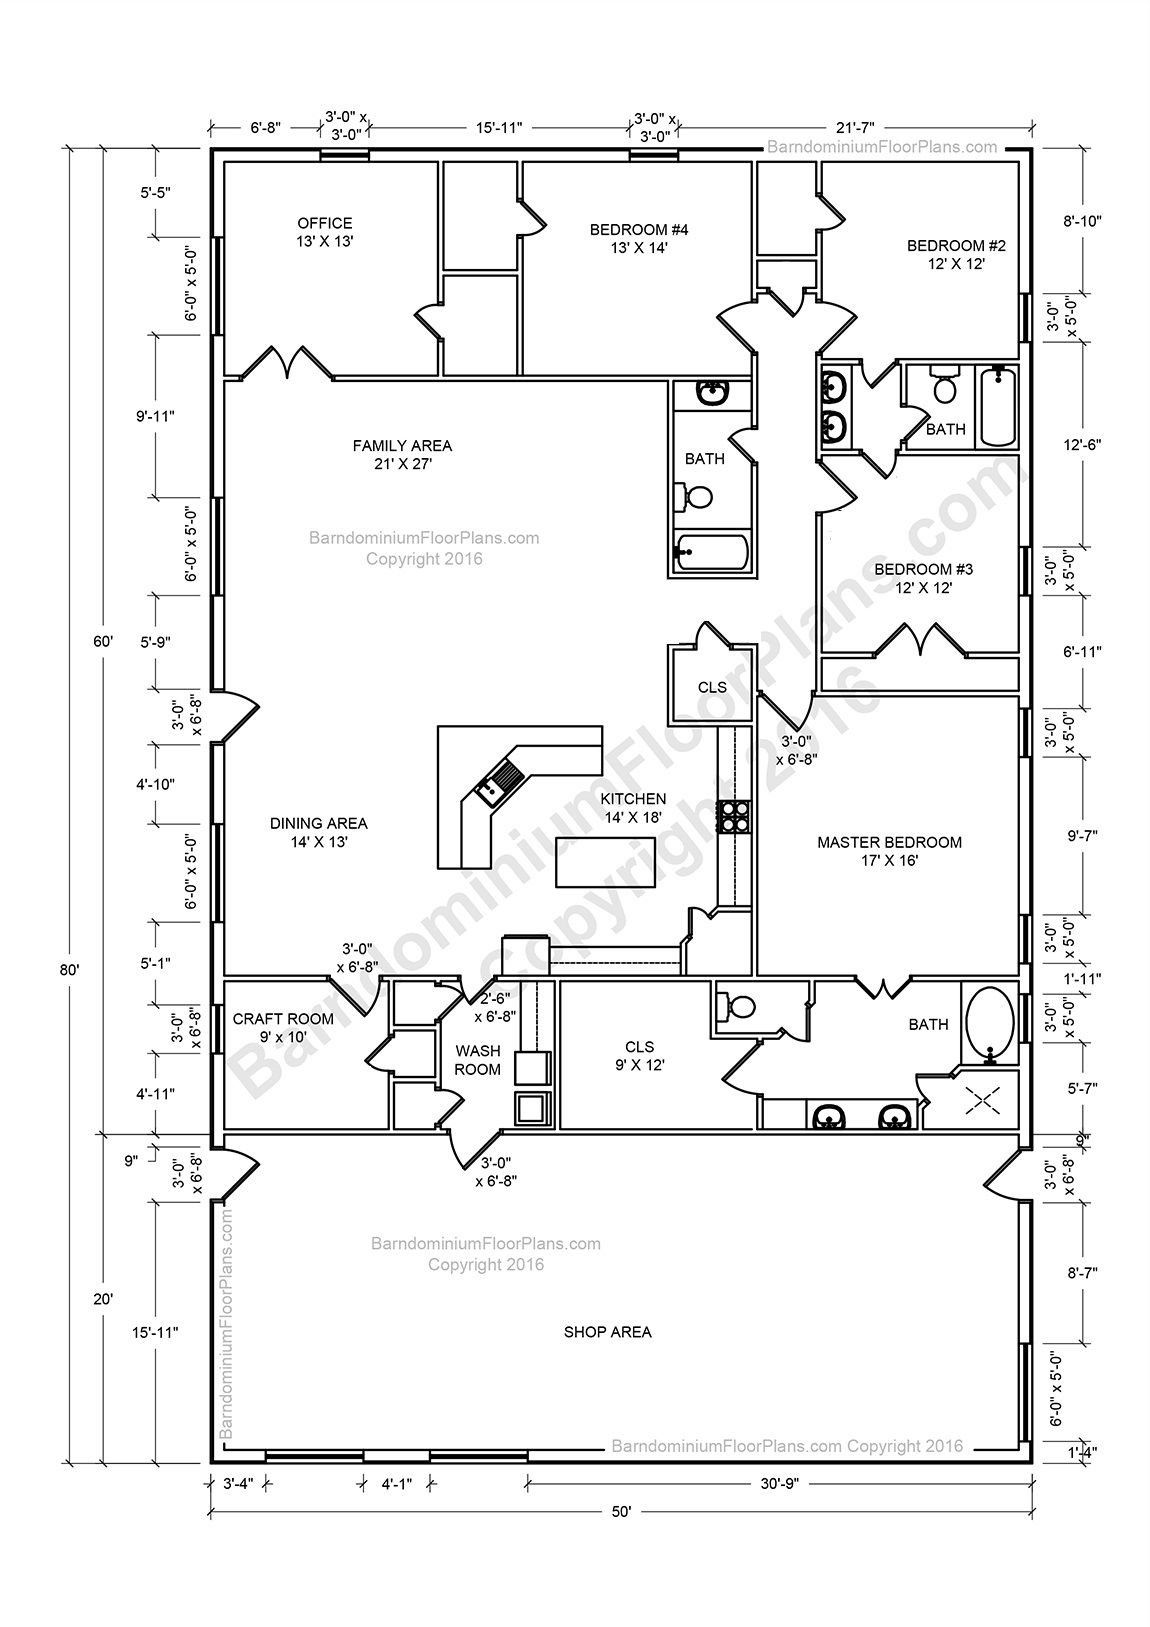 Inspirational One Story Shop House Plans Barndominium Floor Plans Pole Barn House Plans And M Barn House Design Barndominium Floor Plans Shop House Plans